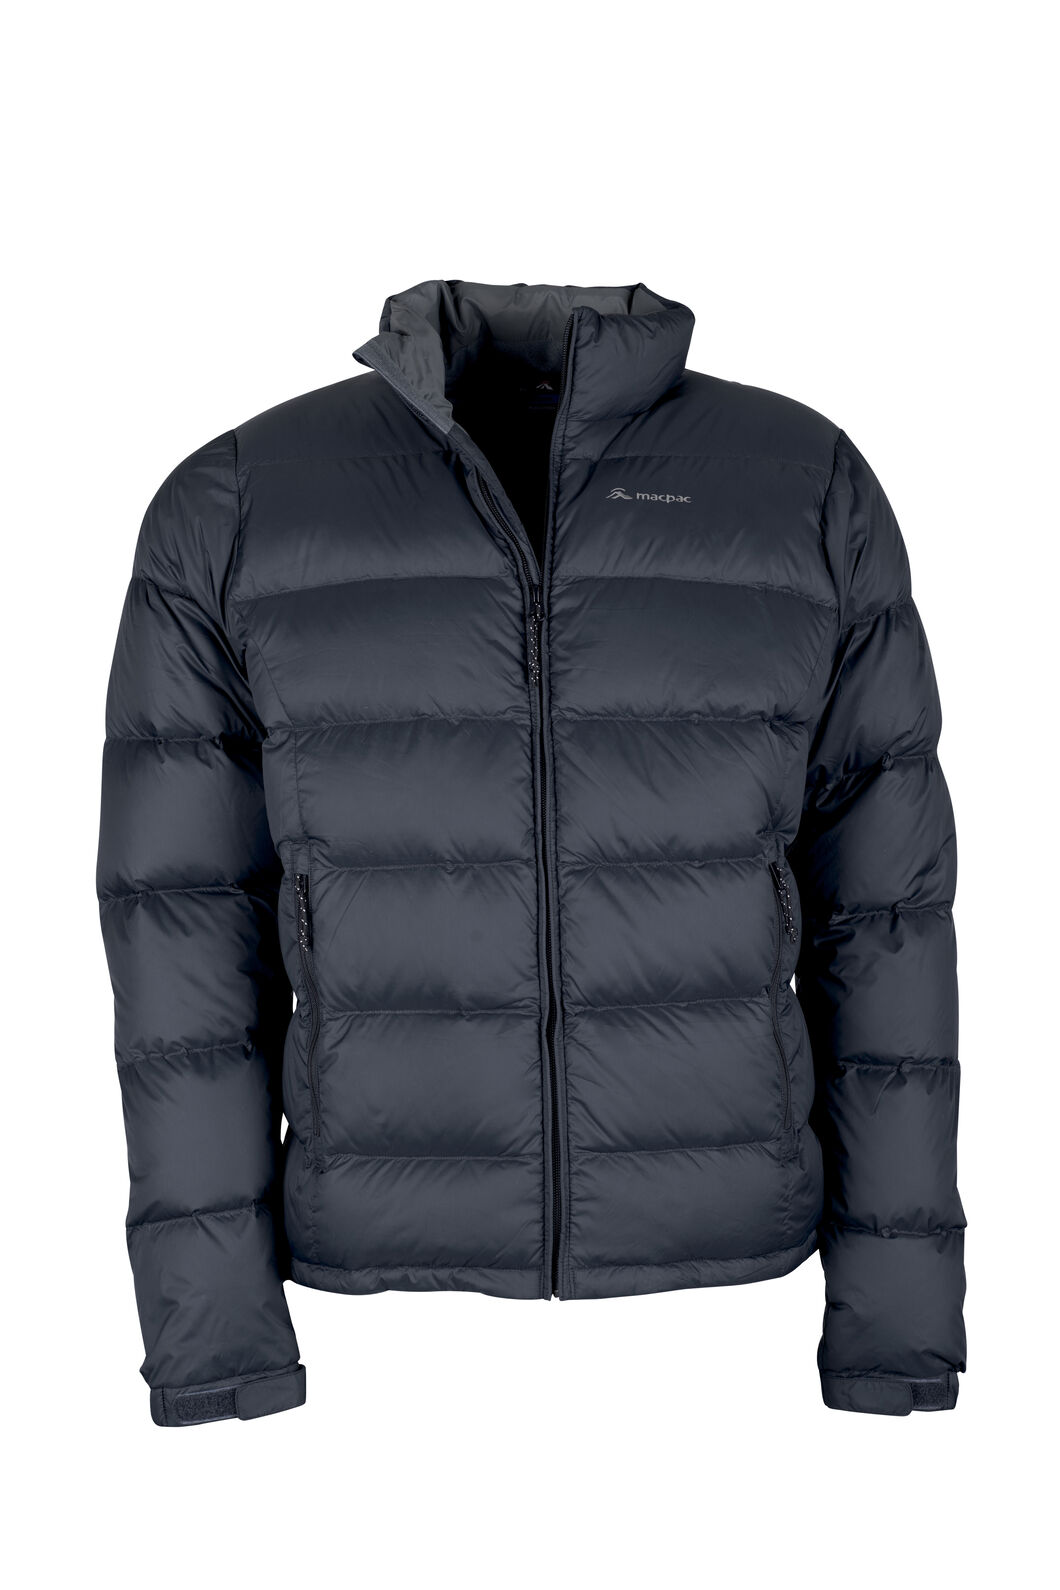 Macpac Halo Down Jacket — Men's, Black, hi-res